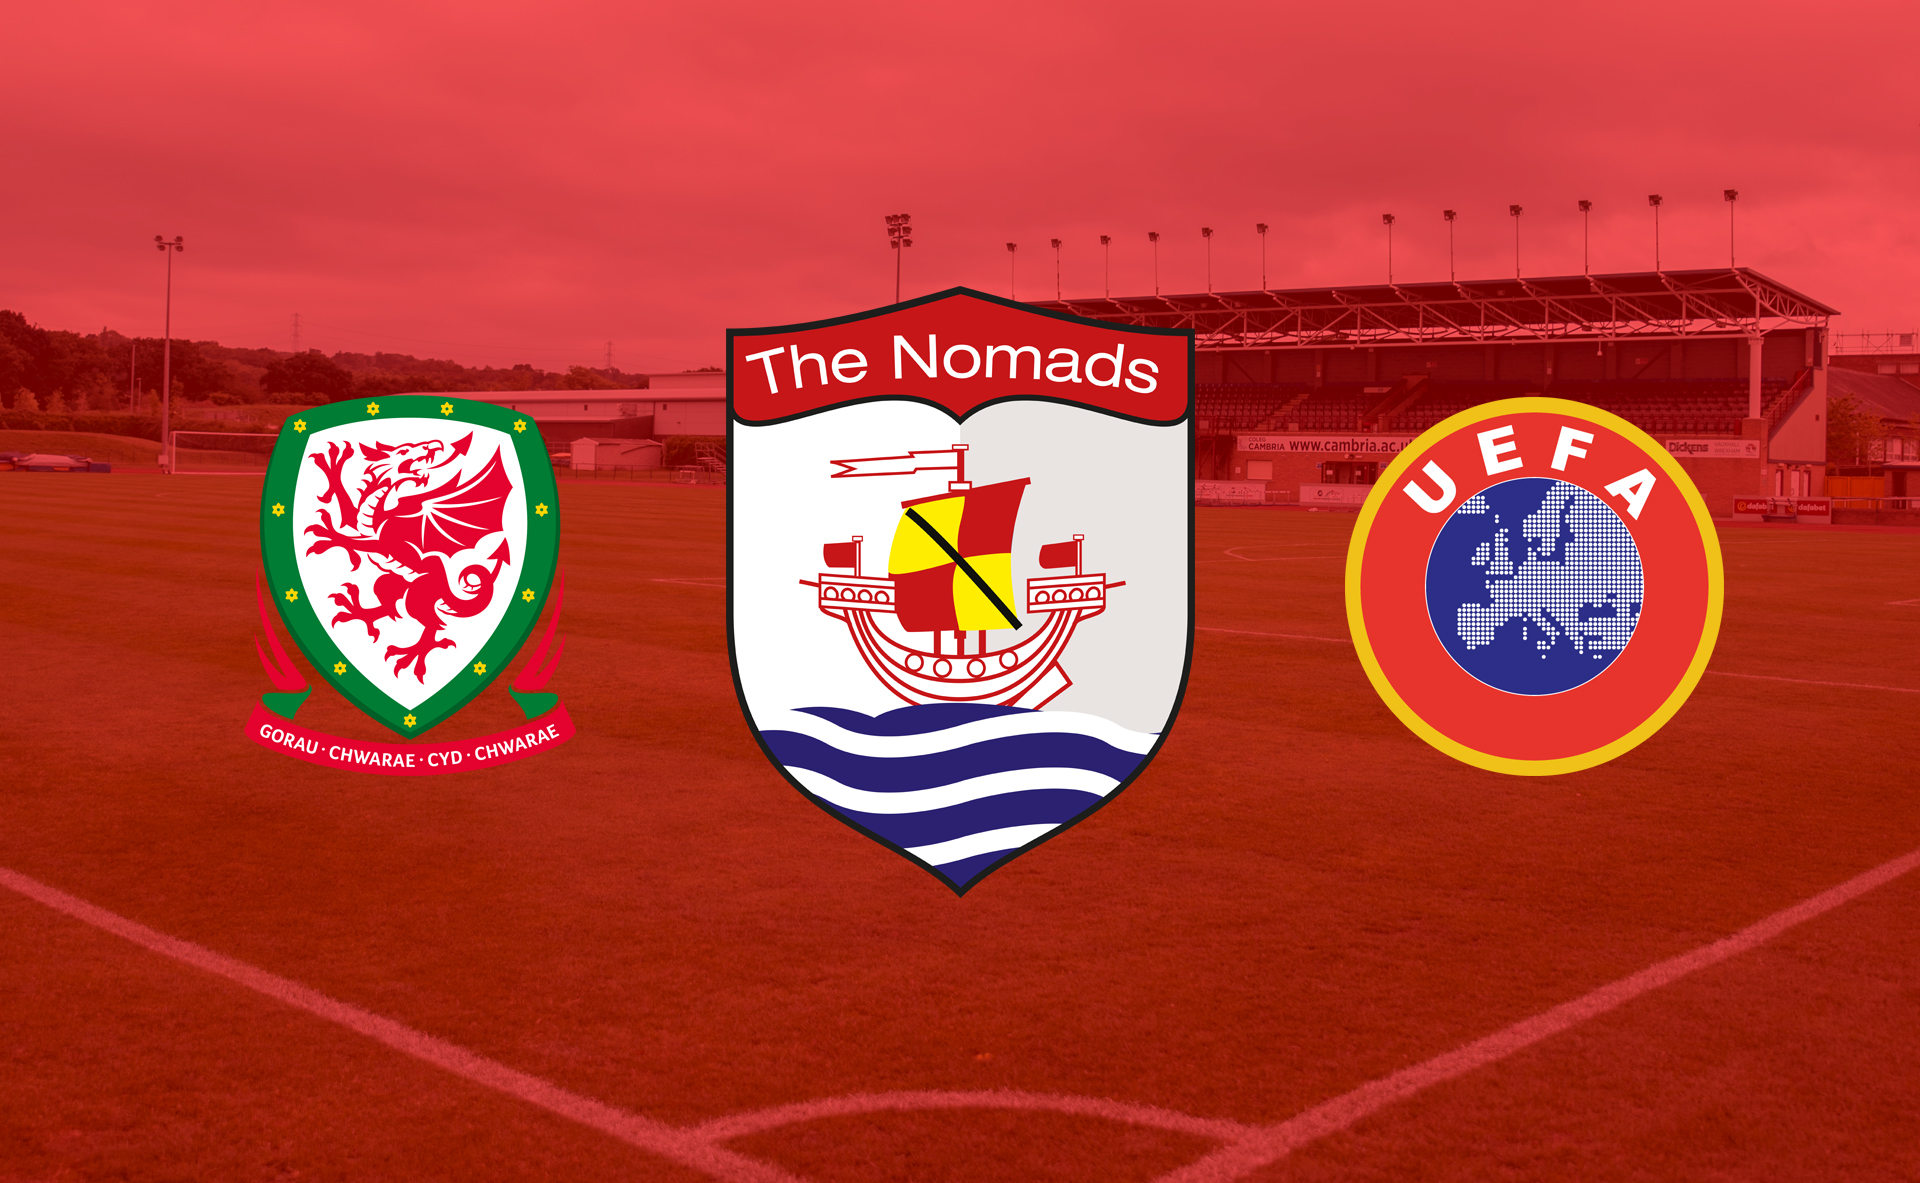 Connah's Quay Nomads are pleased to announce that we have today been awarded both the FAW Tier 1  Licence and the UEFA Licence.